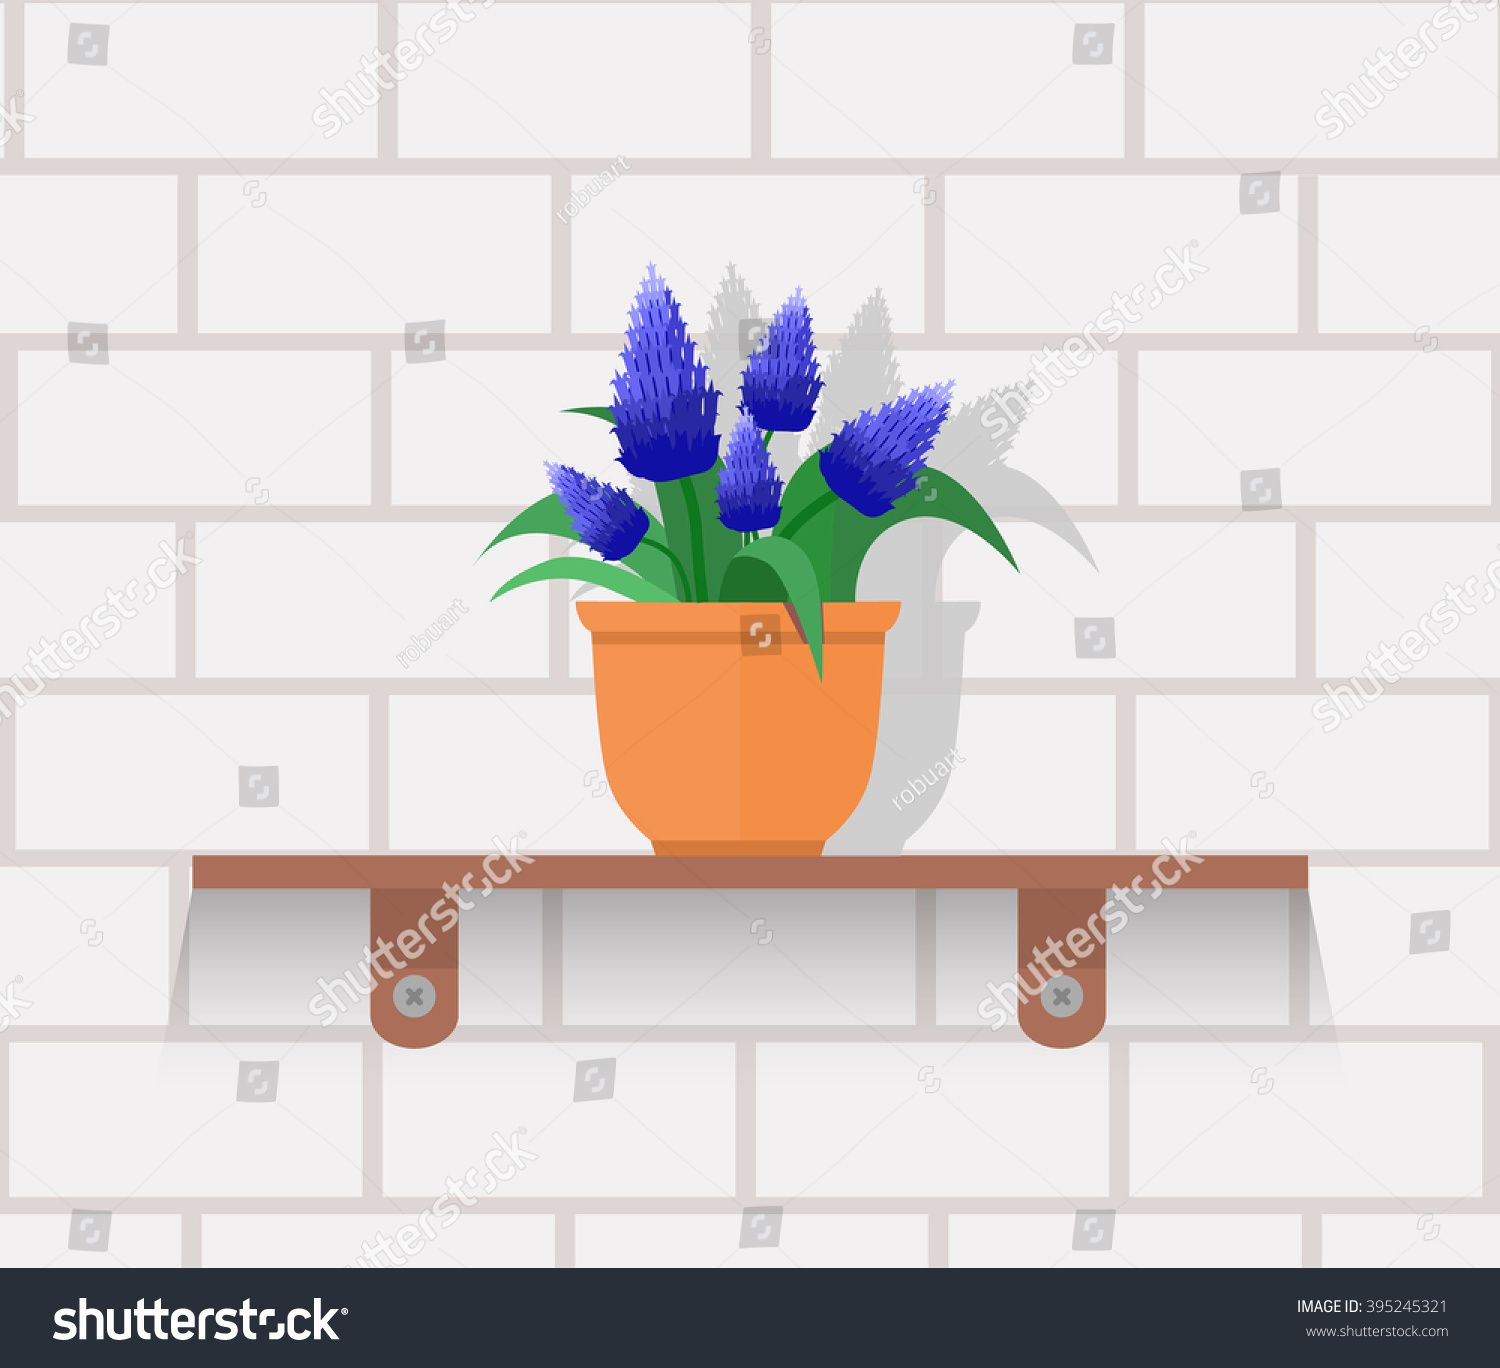 Houseplant design flat concept. House plant pot isolated, indoor plants flower and green nature, leaf and pot, garde #Sponsored , #AFFILIATE, #isolated#pot#indoor#flower